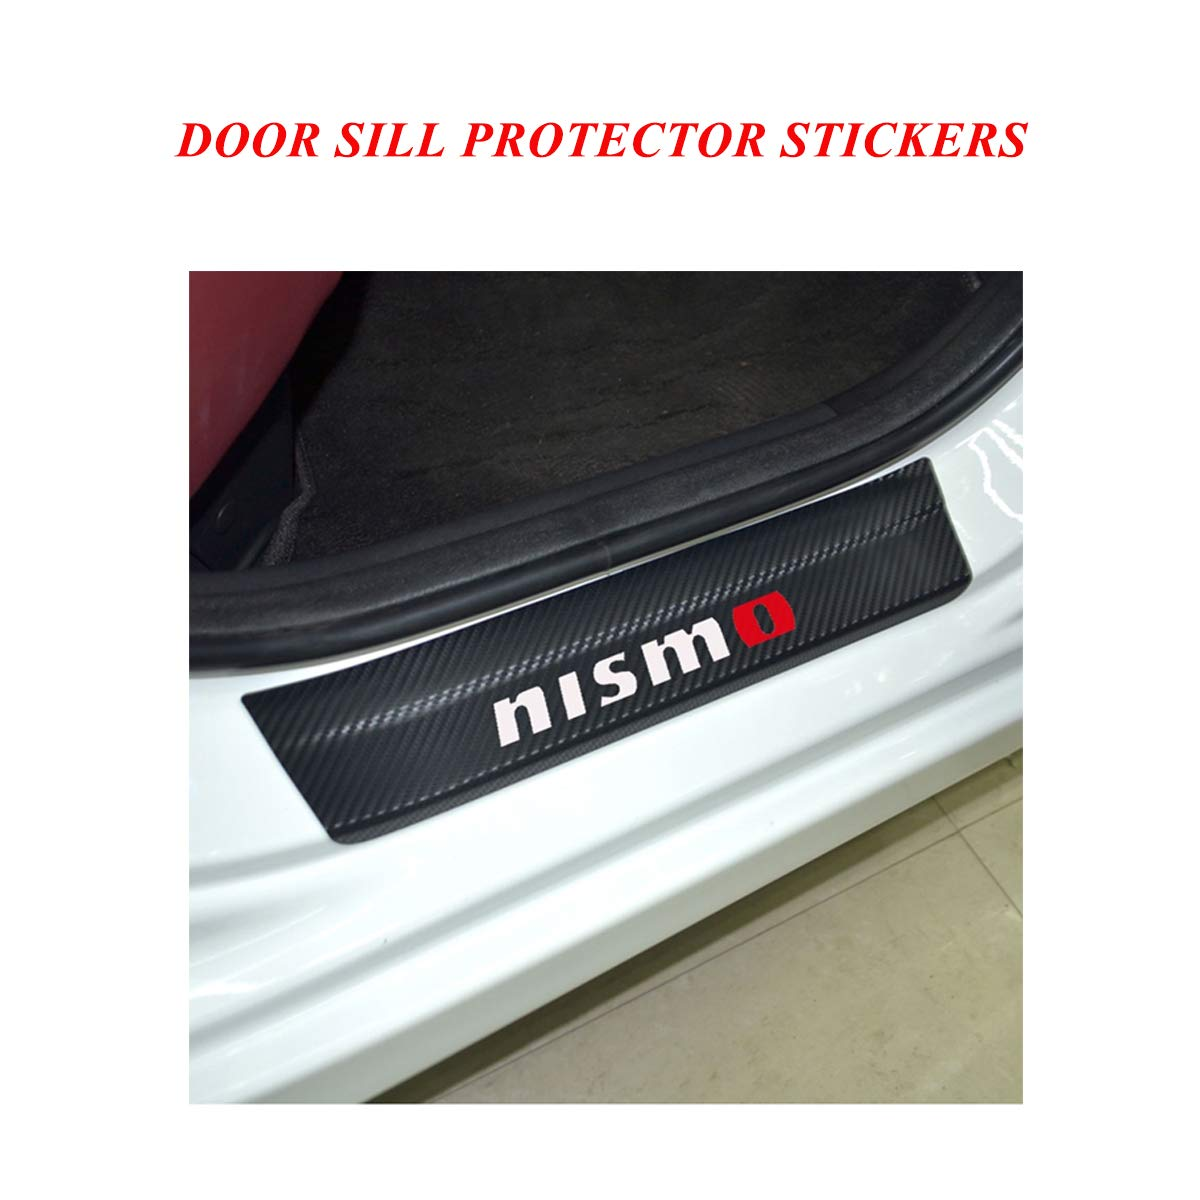 Door Sill protector films with QASHQAI Logo Universal Car Door Sill Entry Guards Protector Stickers Red Door Sill Scuff Plate Protector Pedals Cover Door Sill Protector Covers for Nissan series